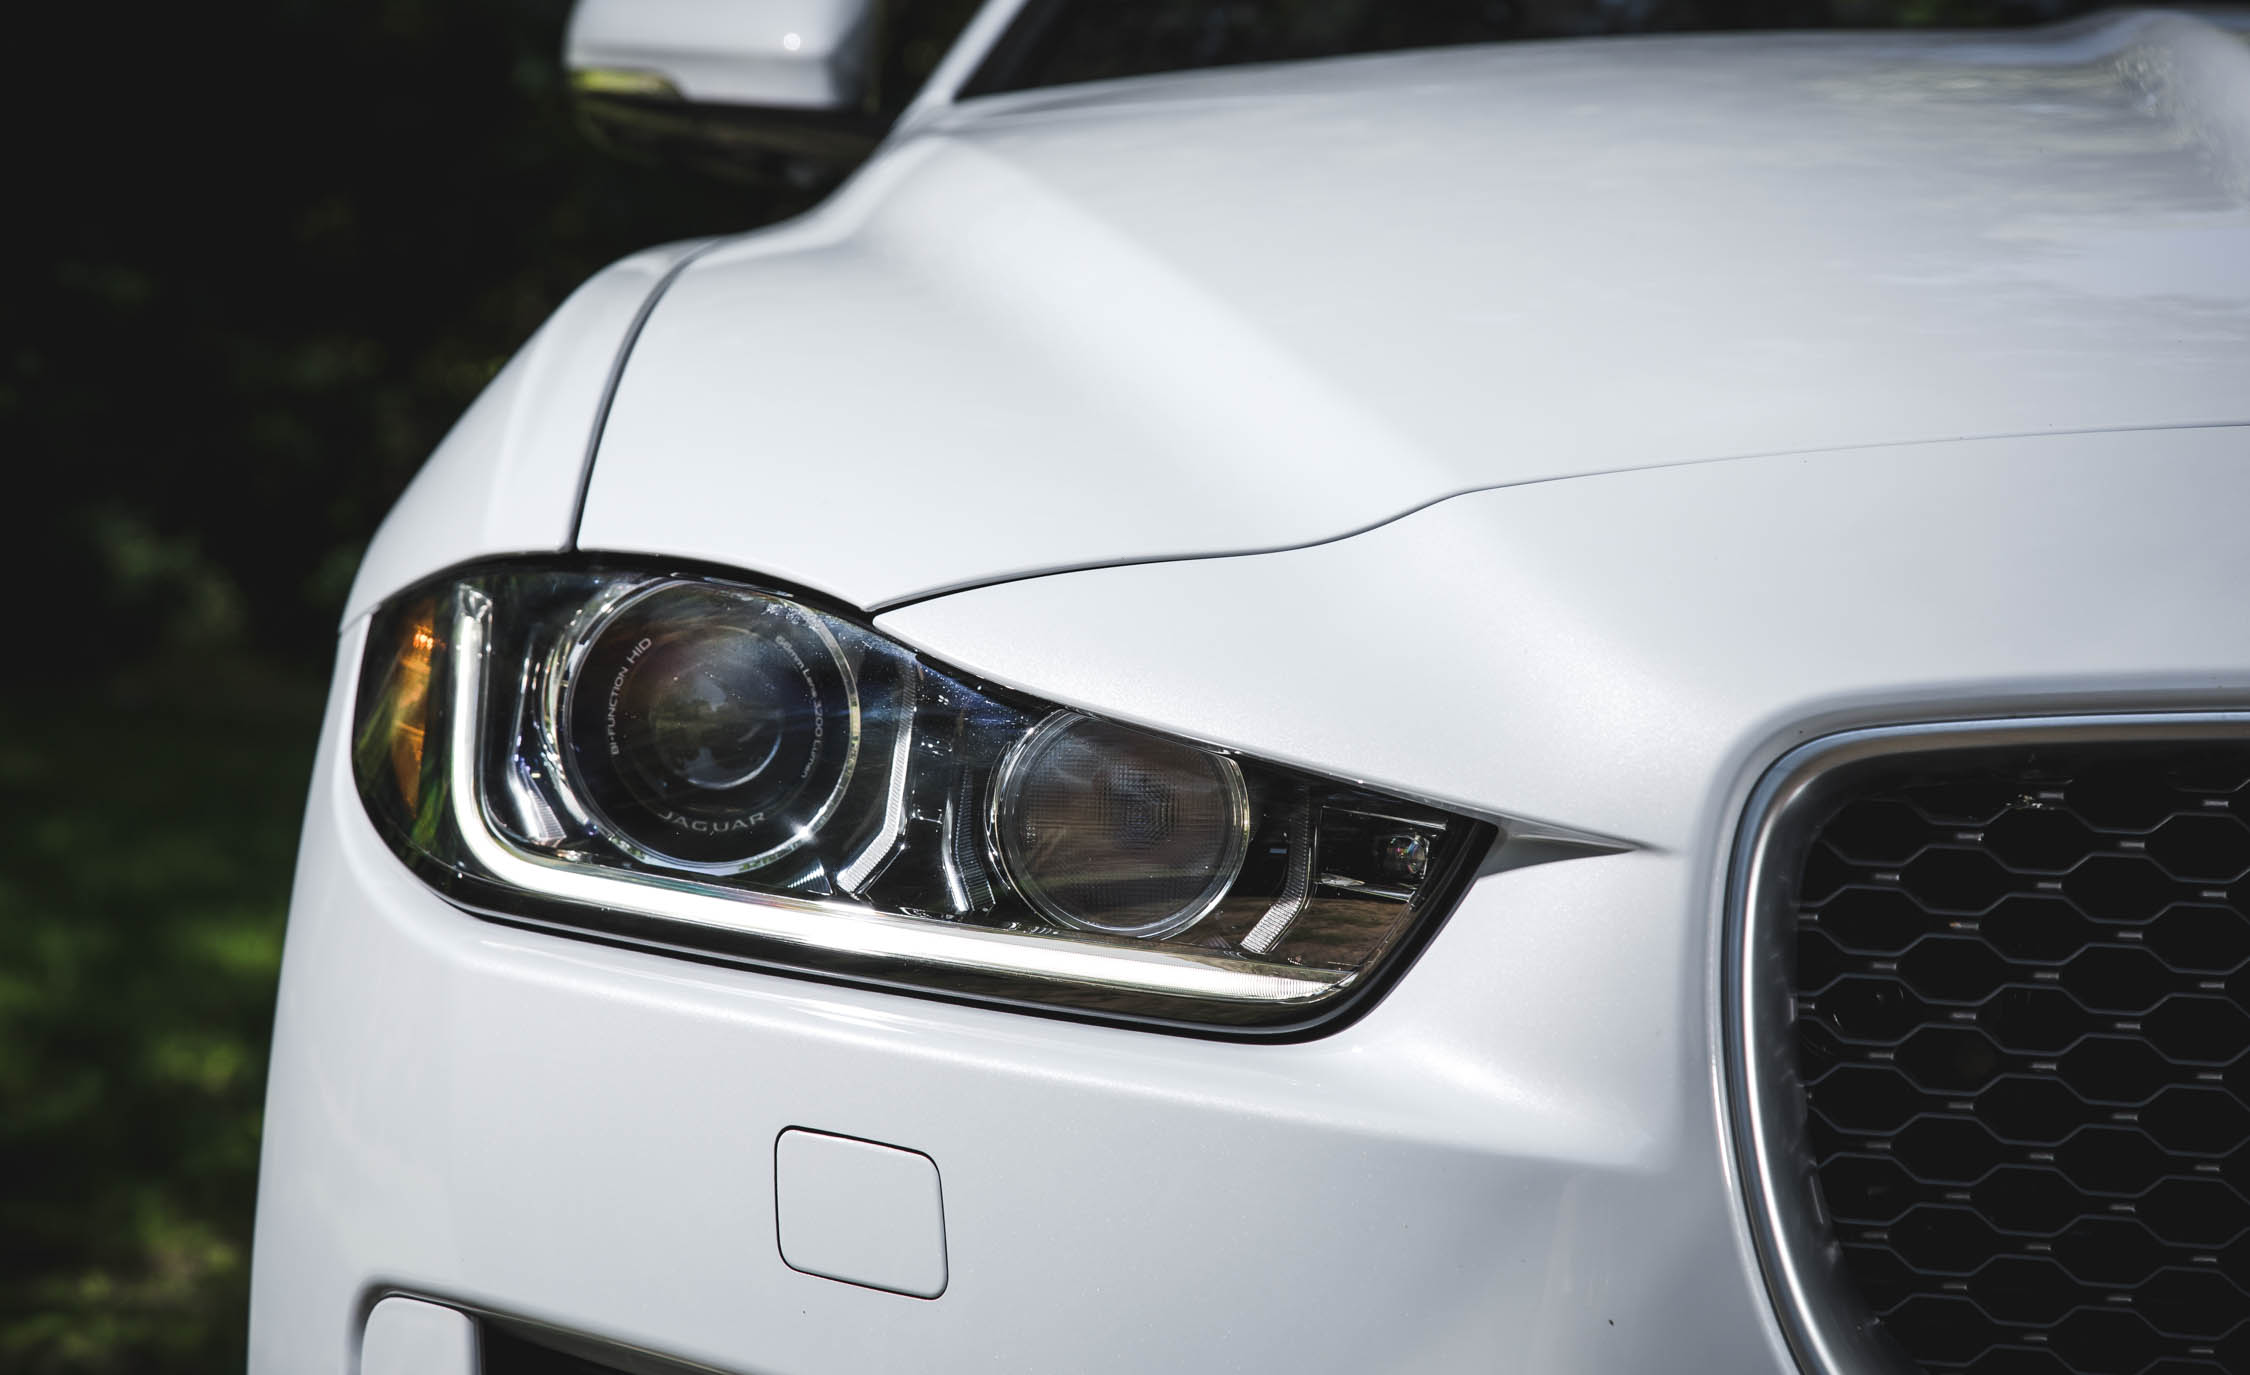 2017 Jaguar Xe White Exterior View Headlight (View 7 of 32)